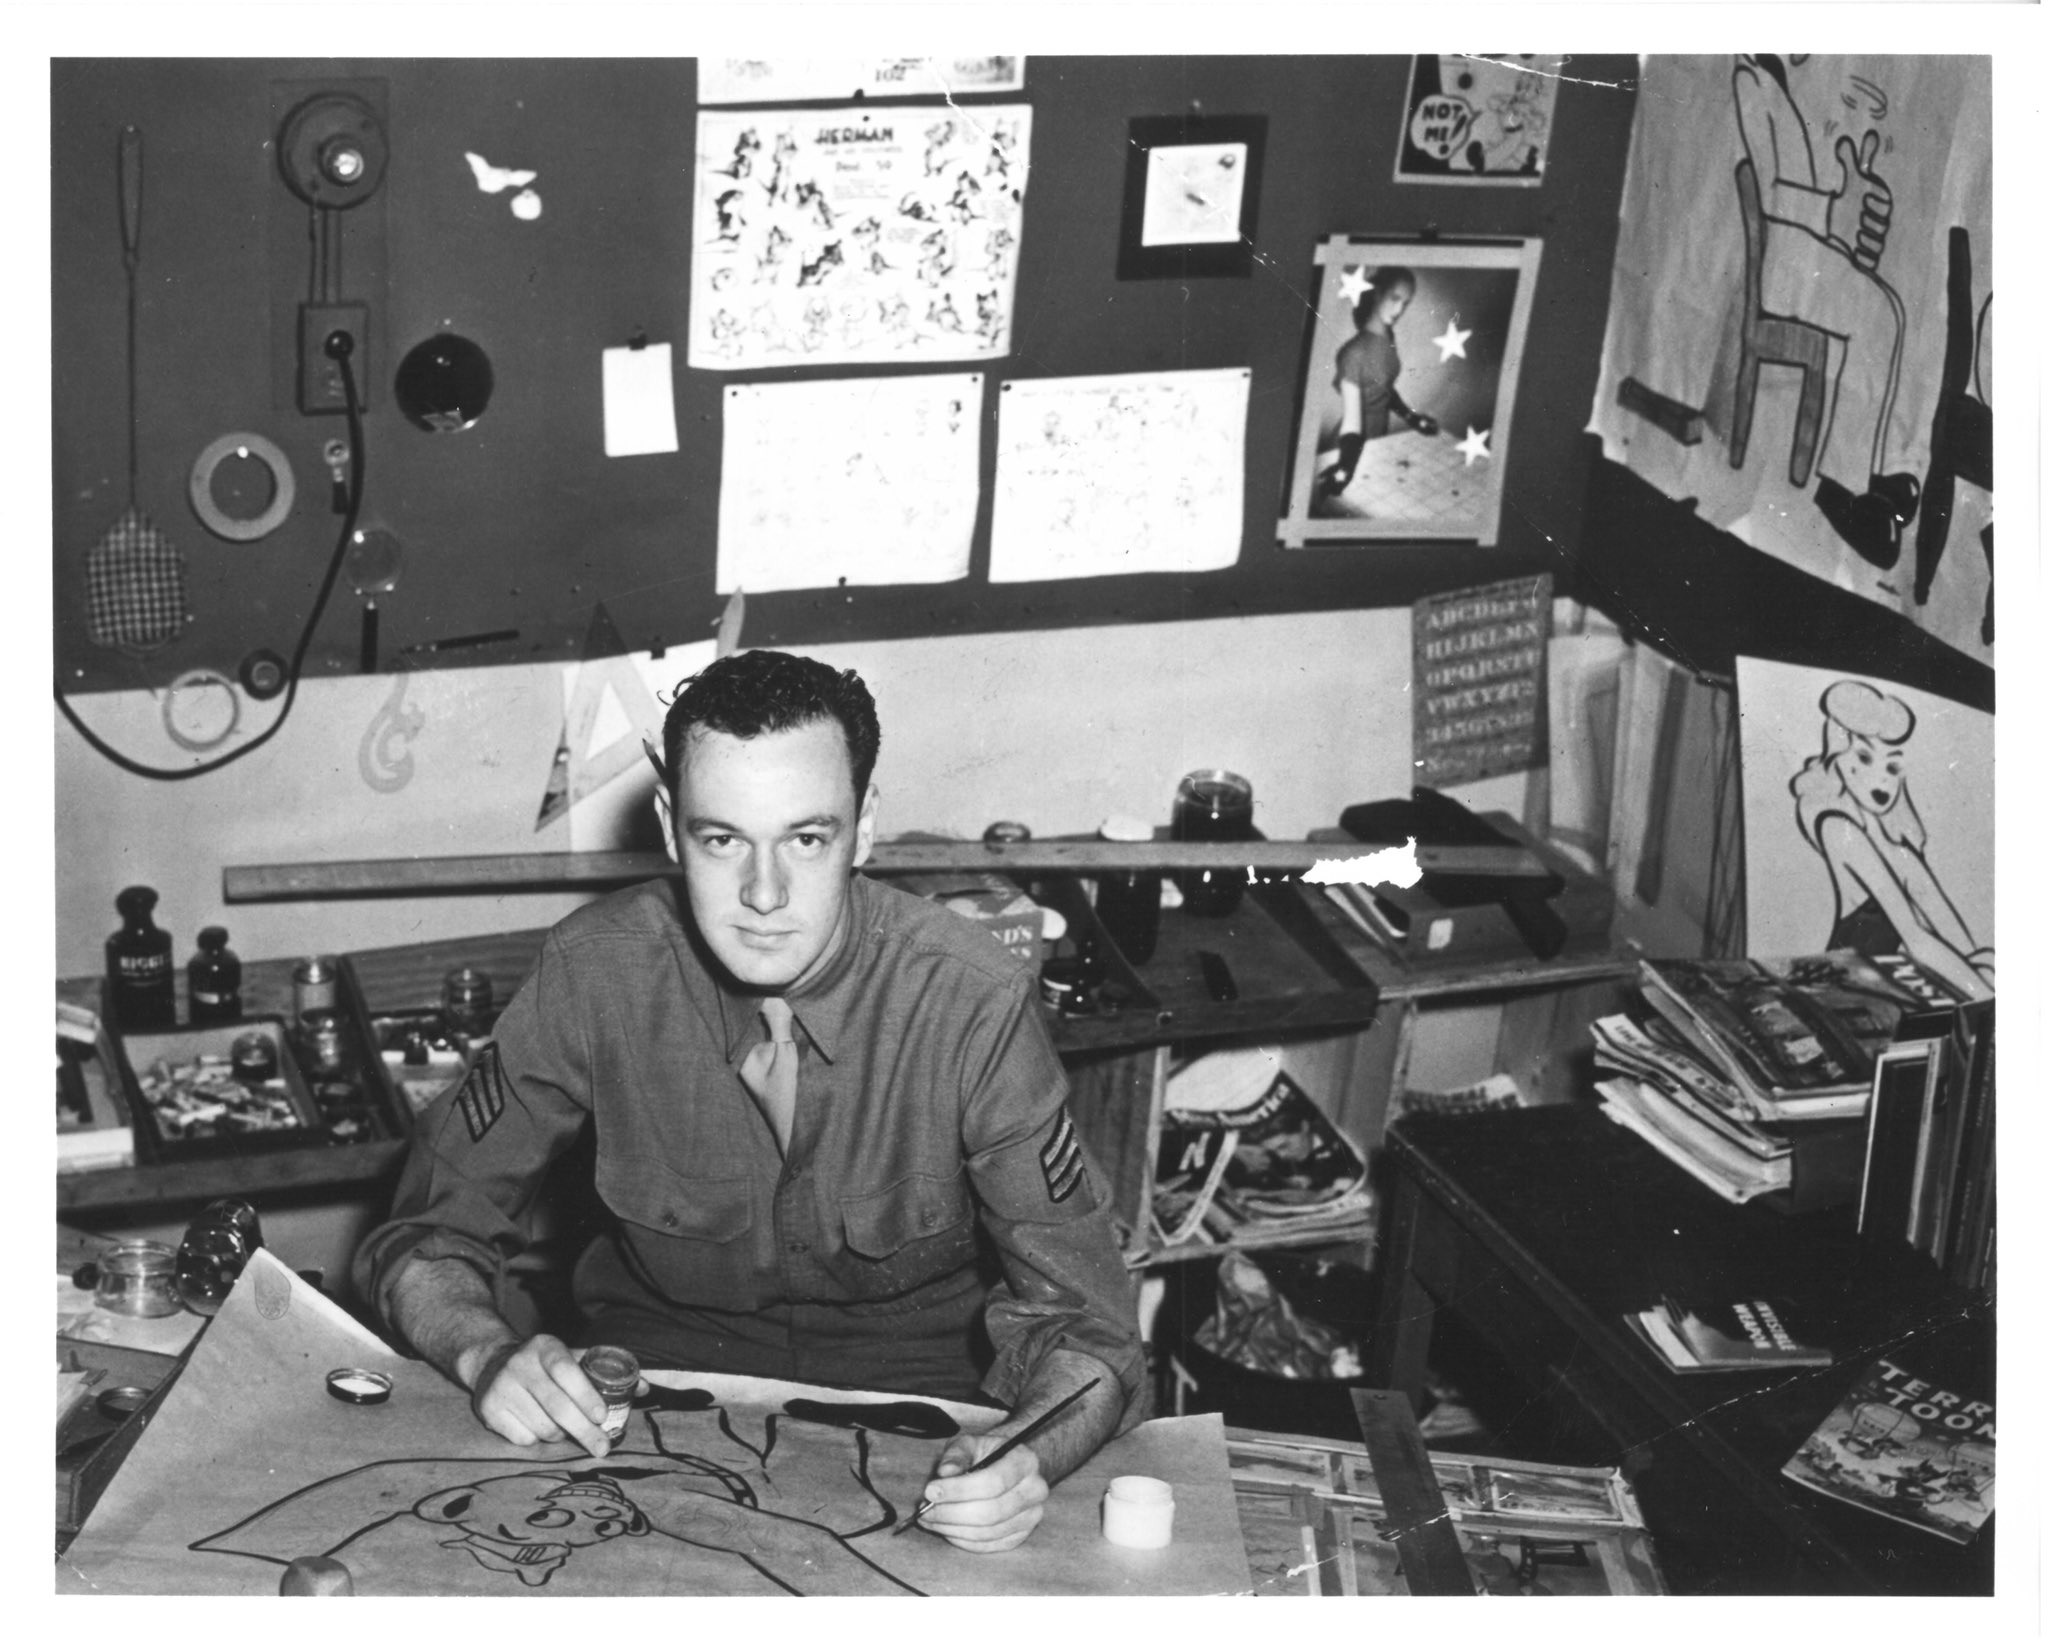 Stan Lee sits in a office, with several drawings on the background. He is sitting down in front of a table; on that table he is drawing an image.